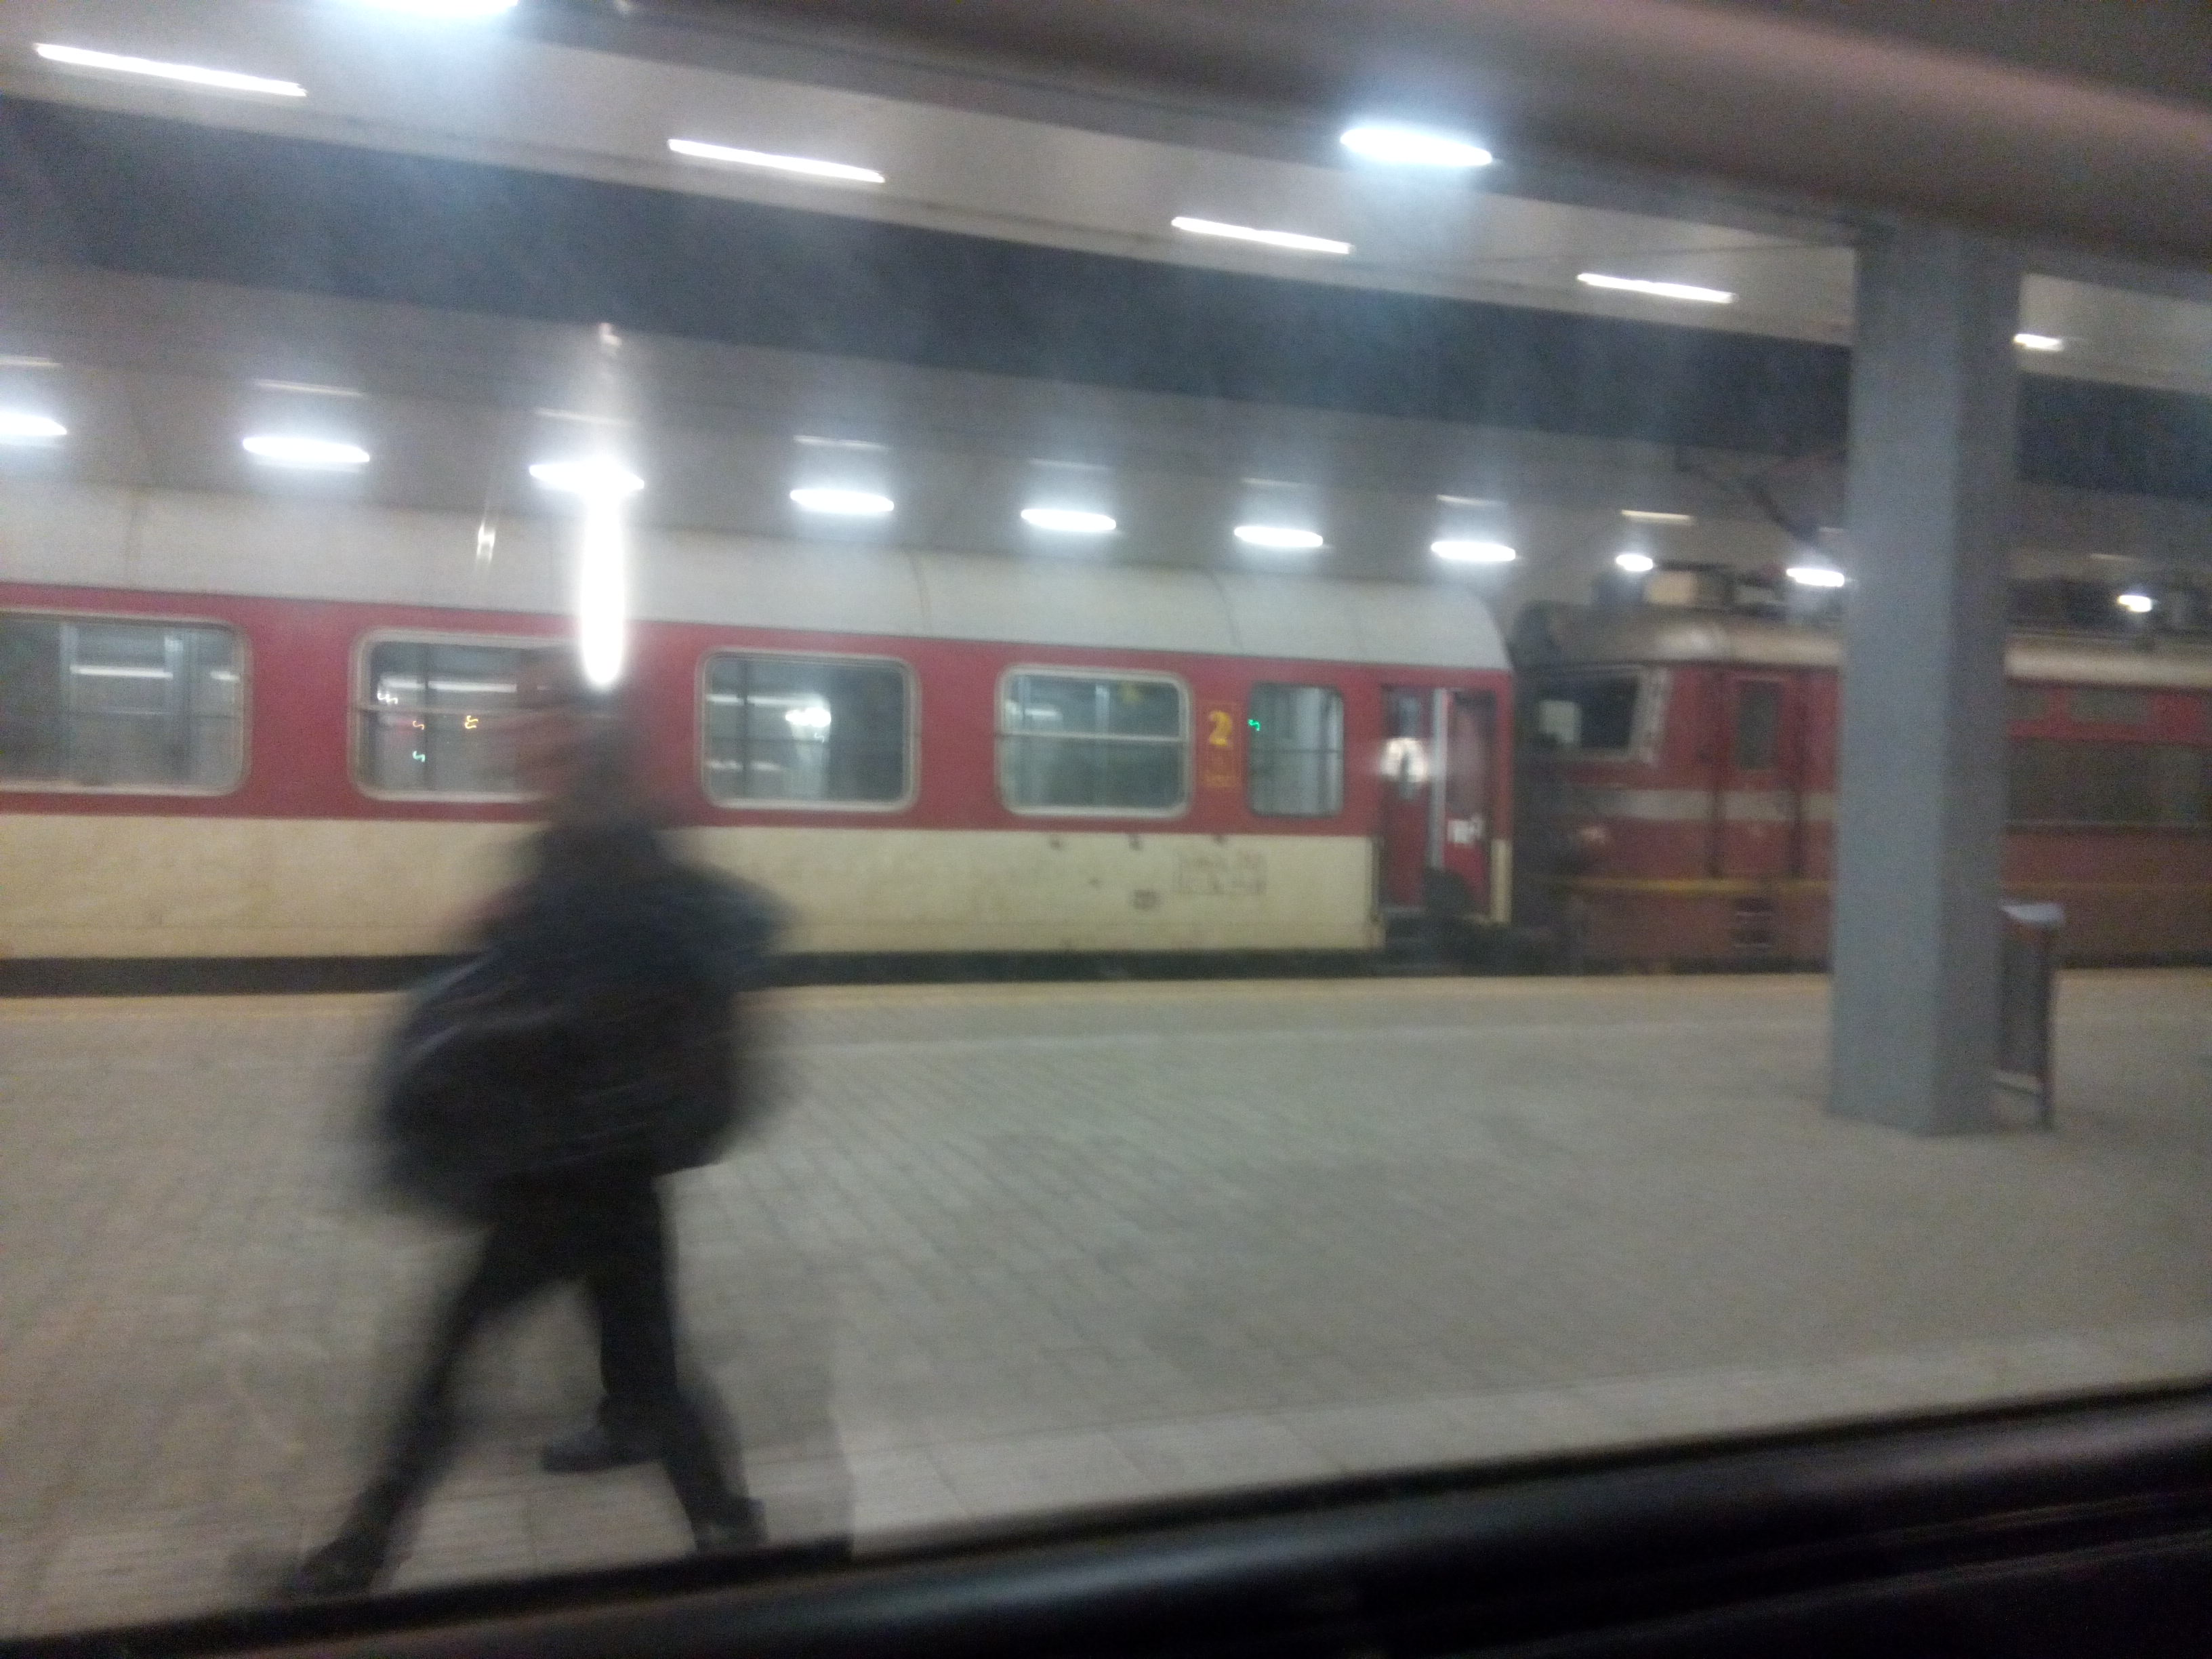 View from a train window onto a platform, with a blurry person walking by and a red and yellow train on the opposite track